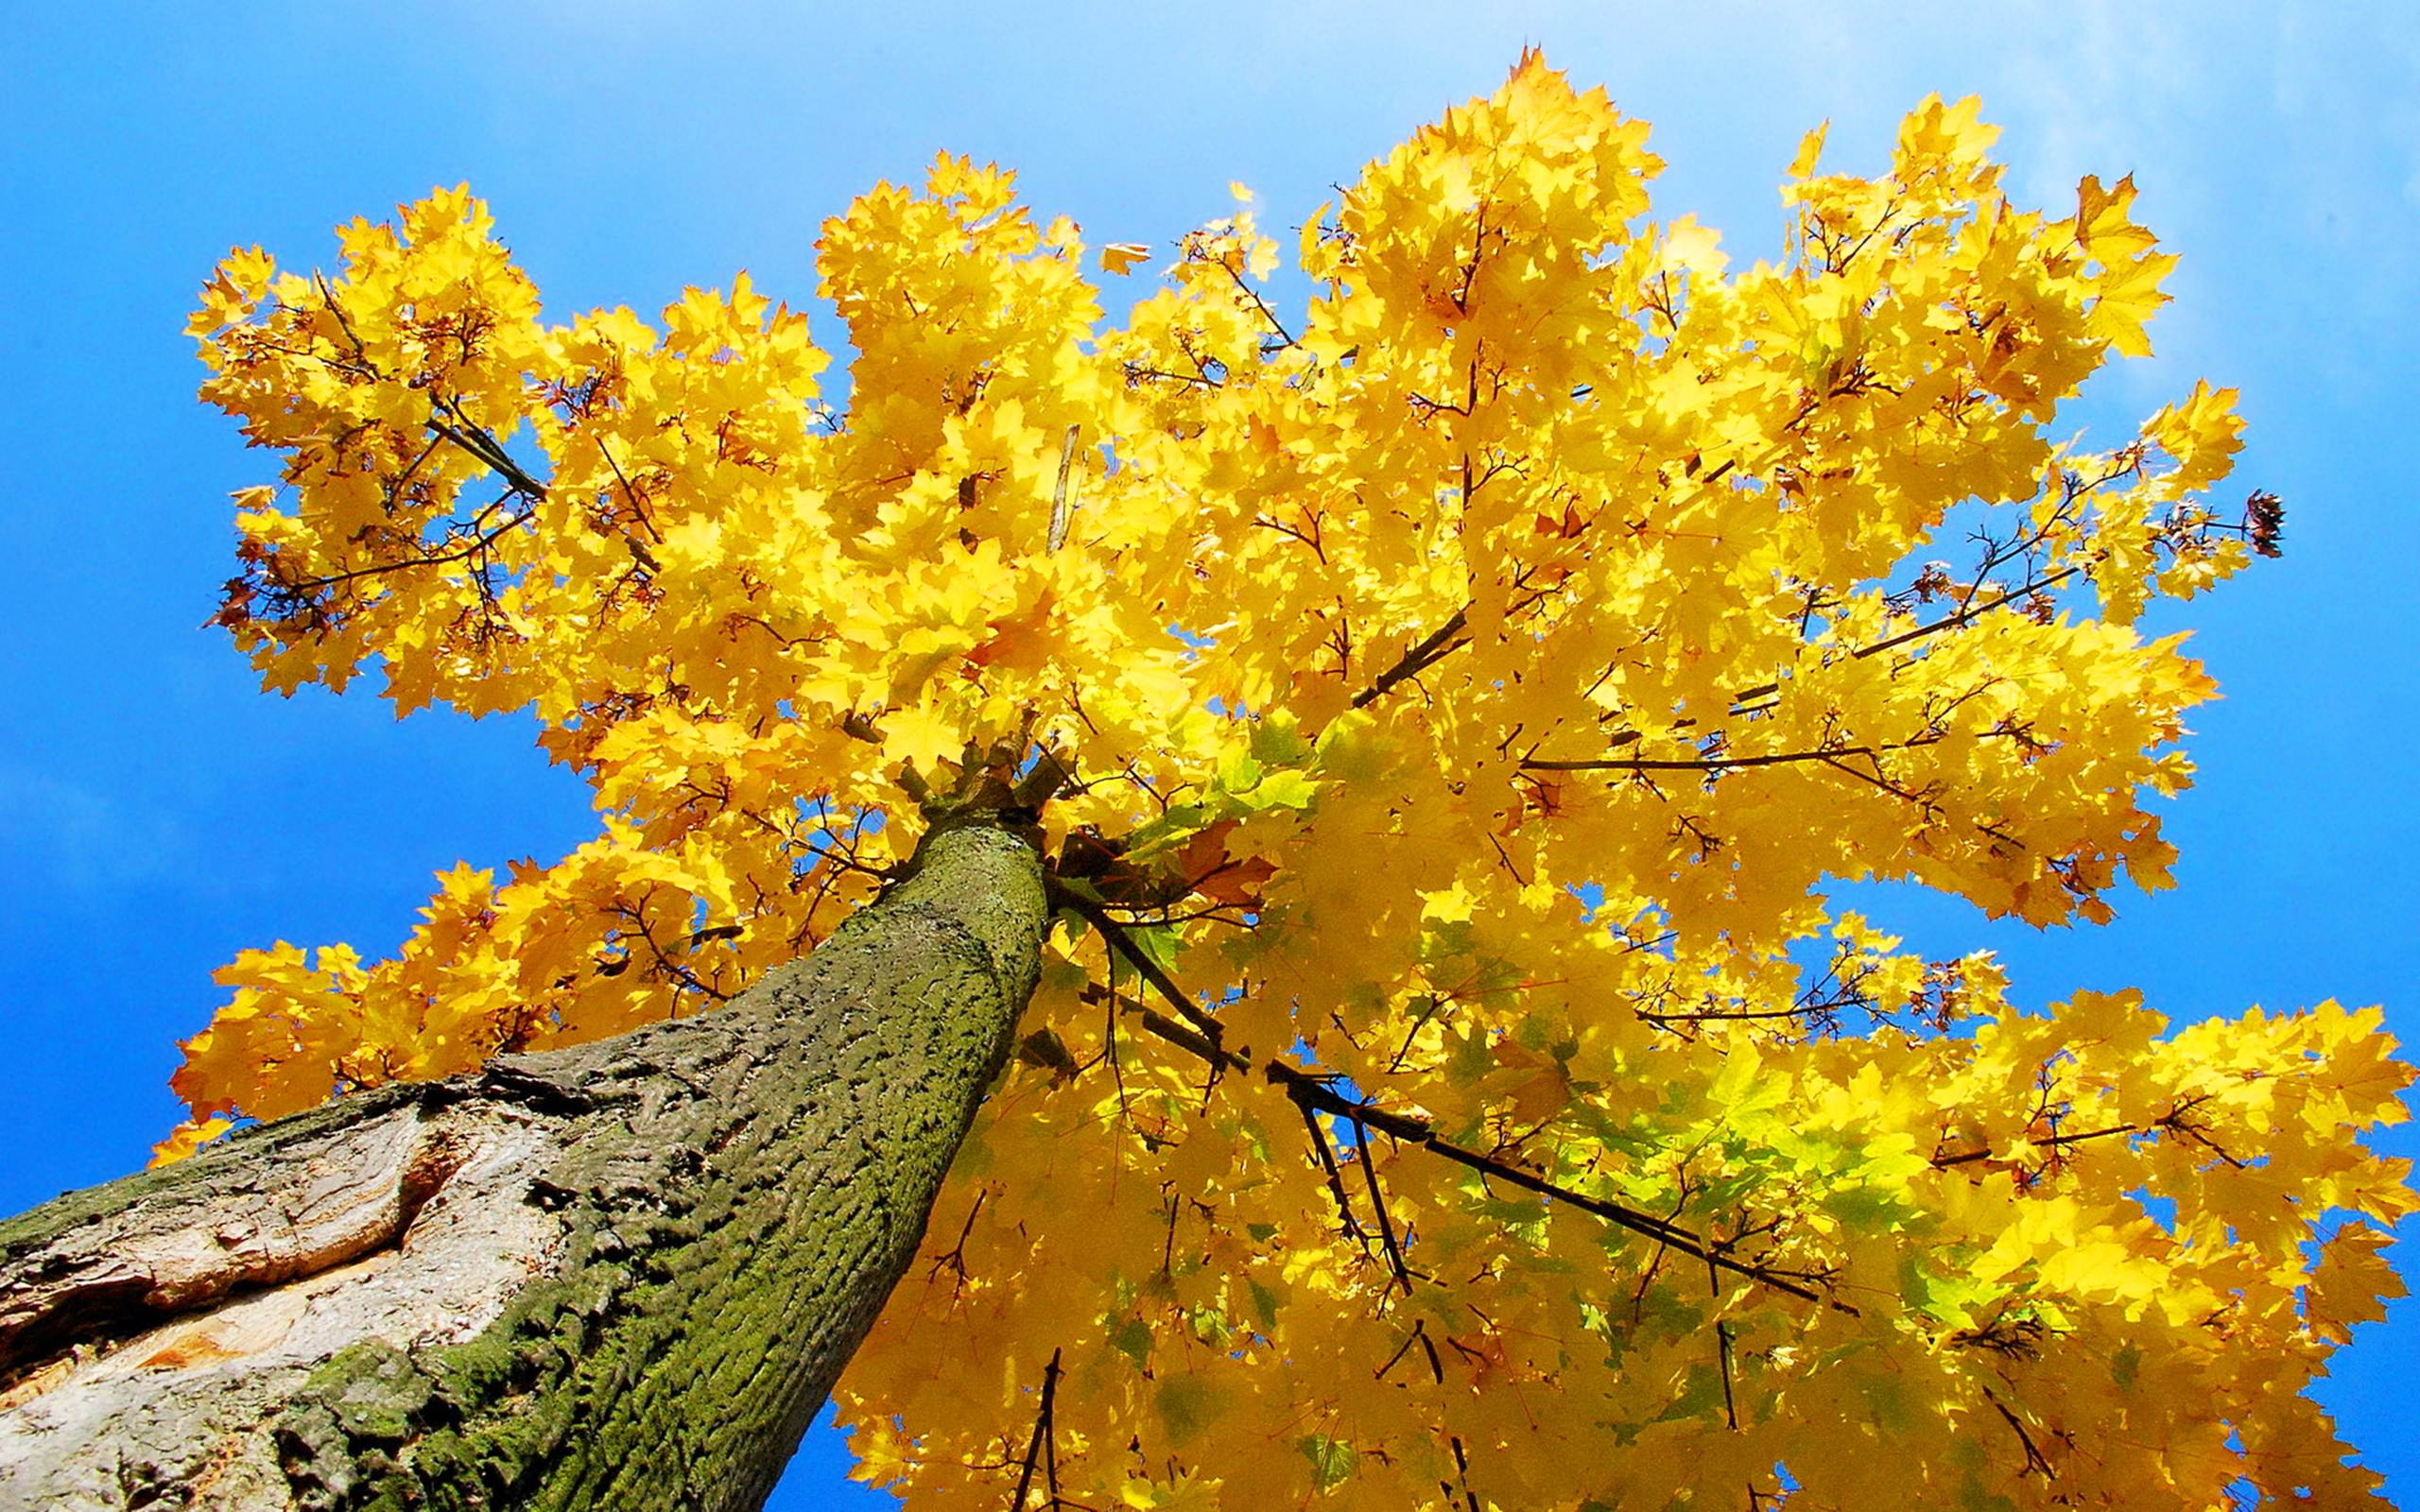 Late Fall Iphone Wallpaper Yellow Maple Tree Autumn 7052470 Wallpapers13 Com